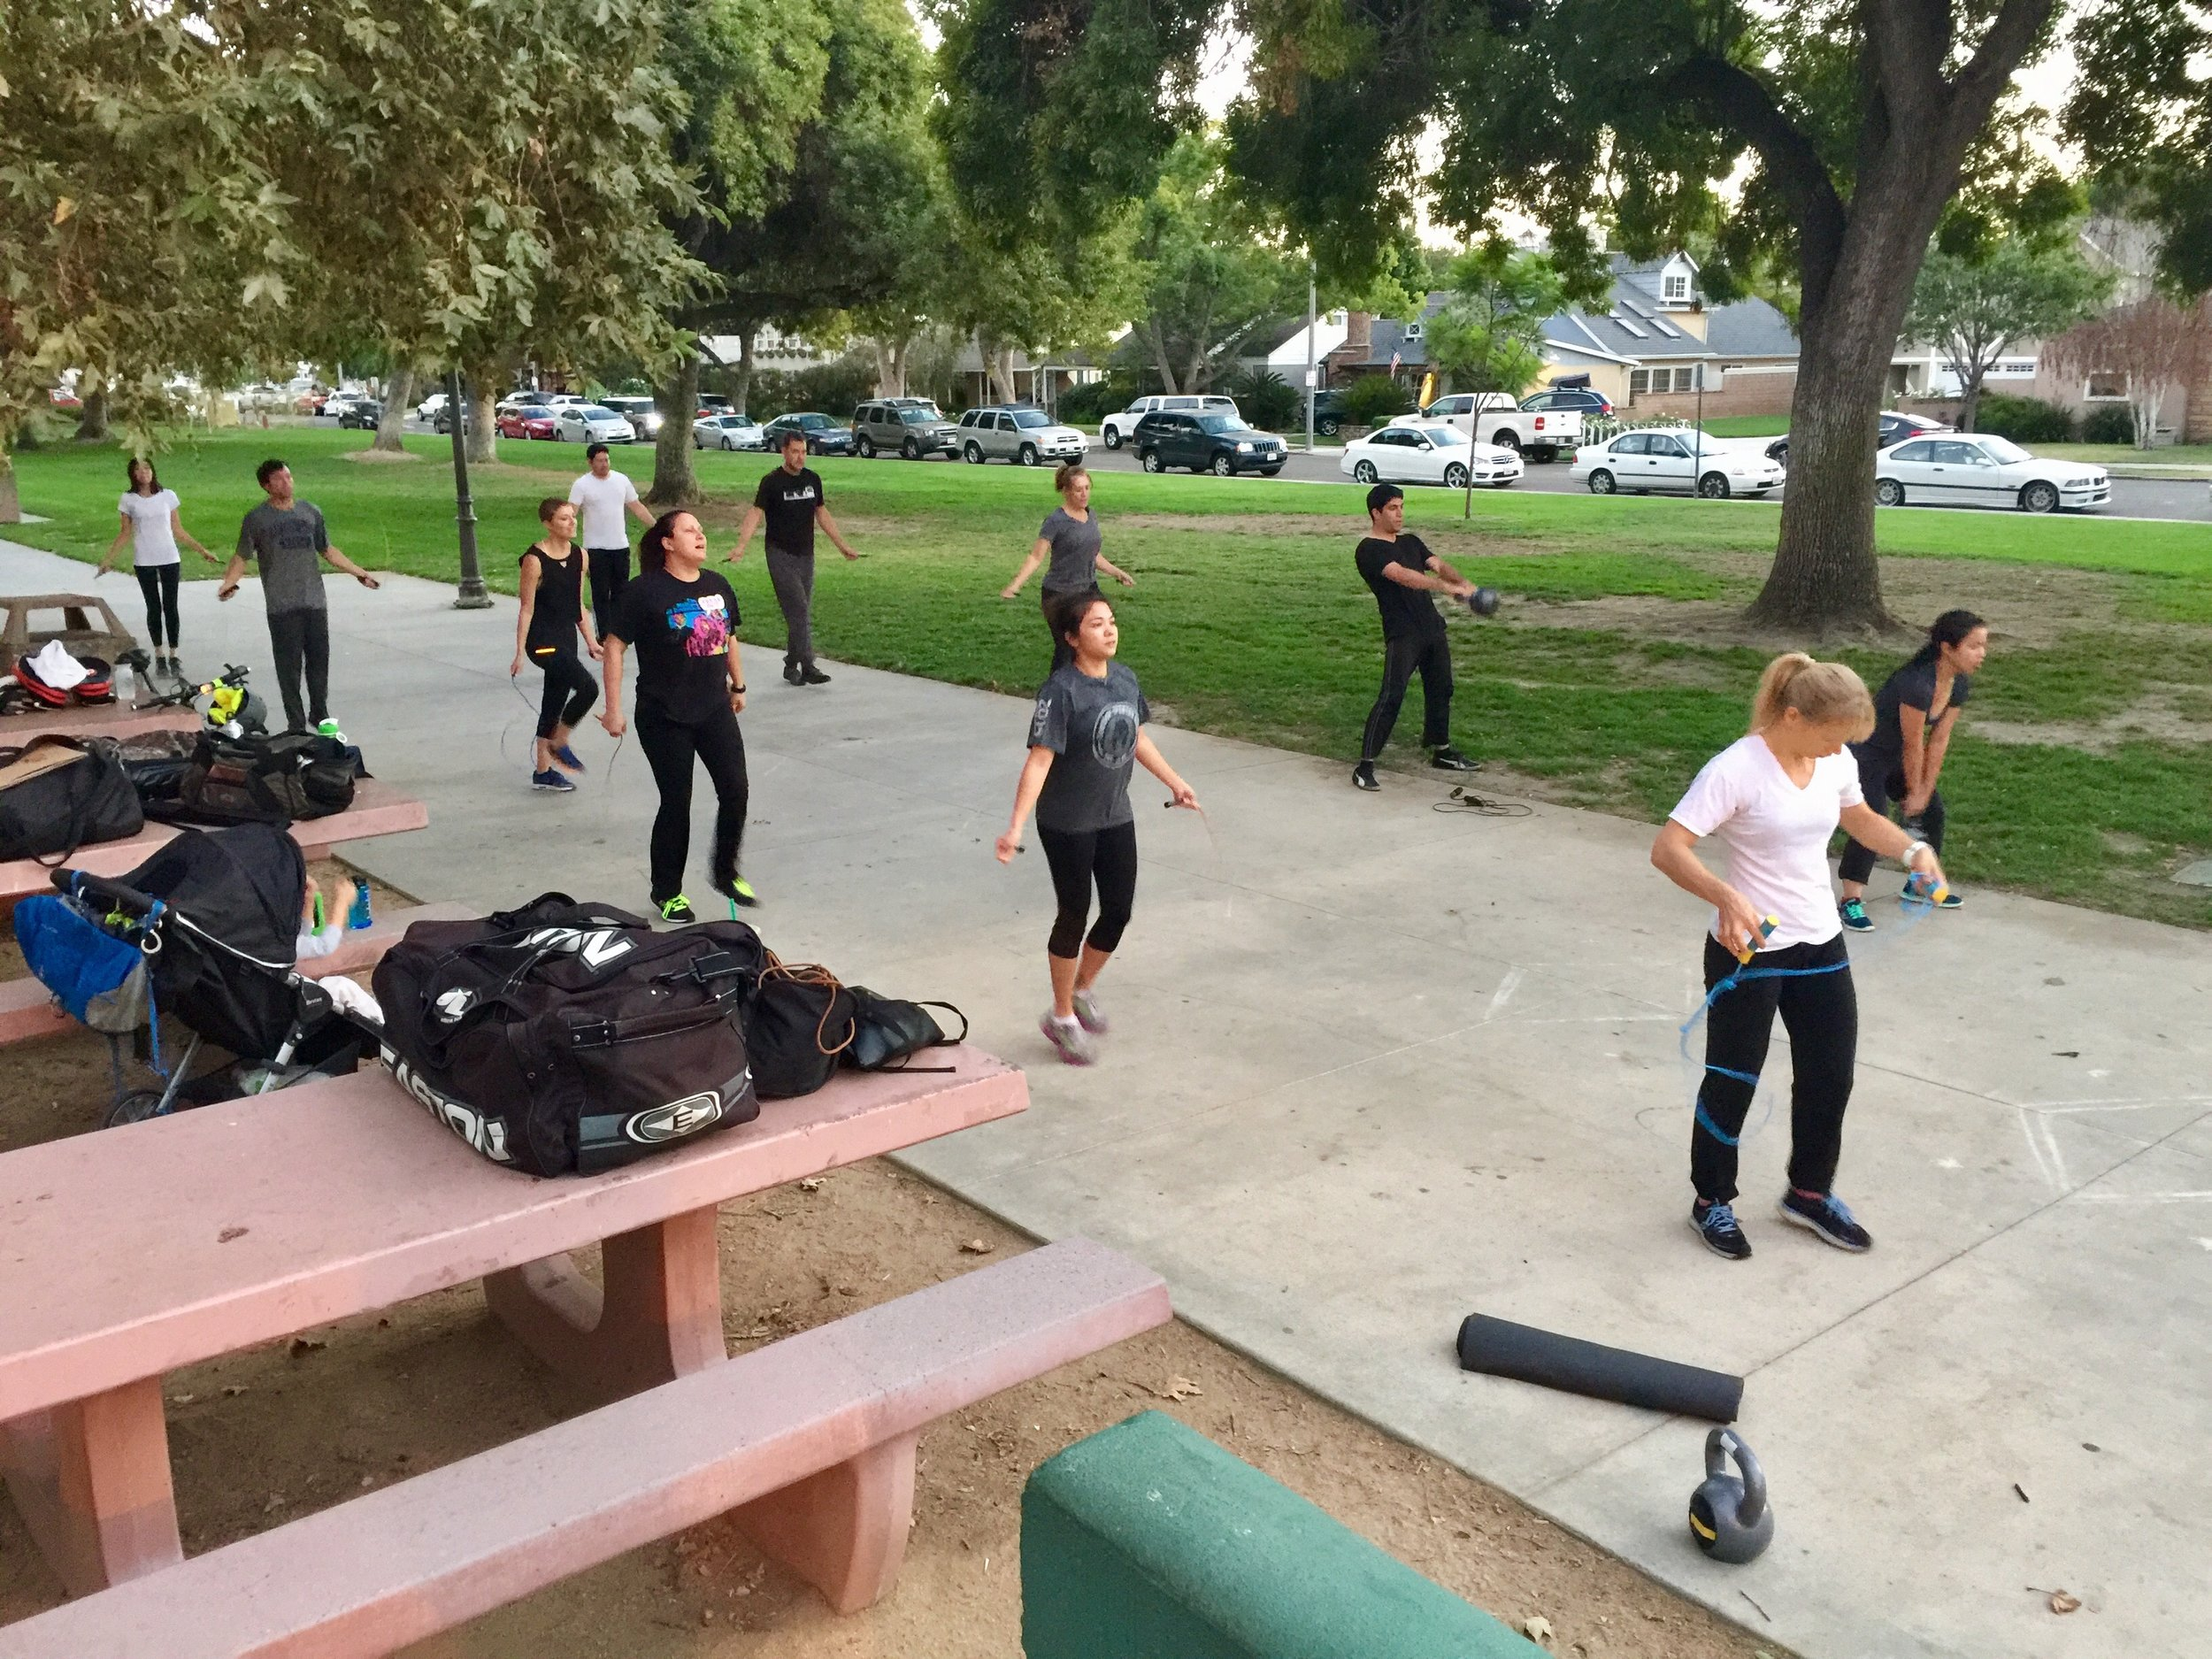 GET AFTER IT!!    LA Combatives Training is genuine, old school training  in realistic environments.    High intensity Interval Training, Proven Calisthenics Workouts and Flexibility Training meet Practical and Simple Self Defense in the  fresh air  as you train at Stunning Parks.